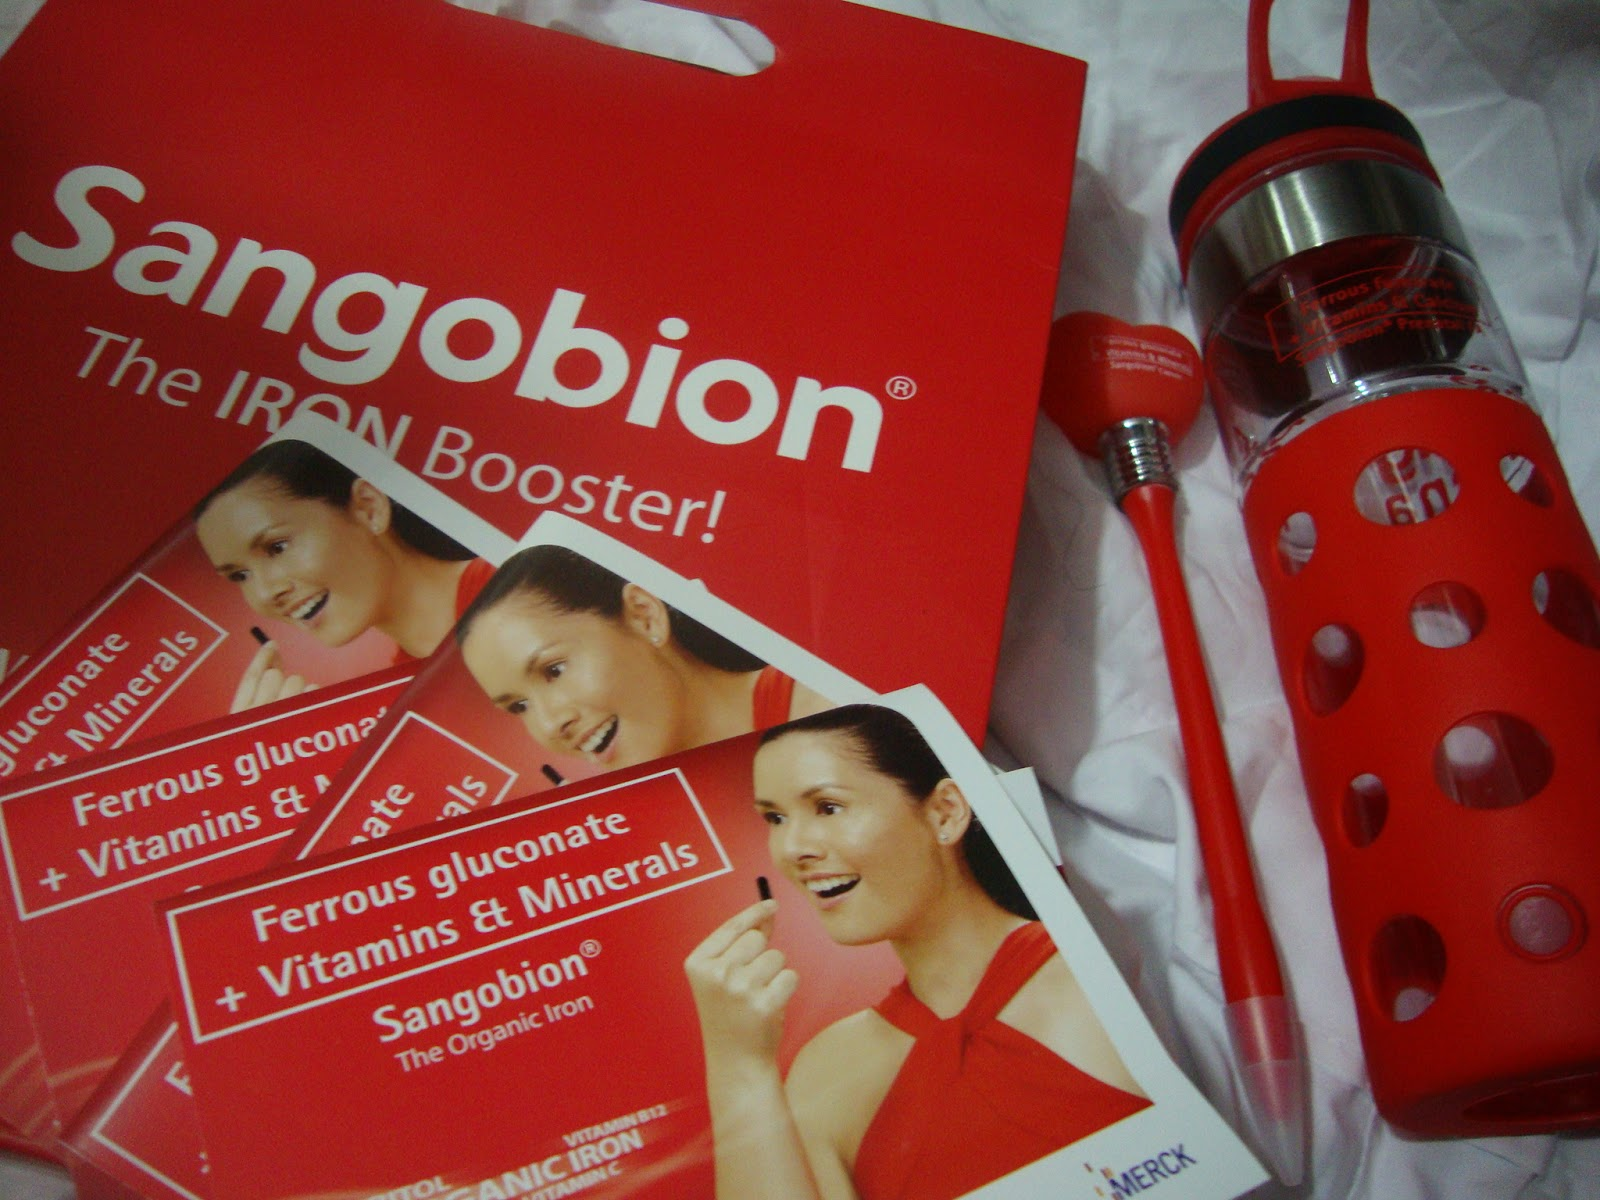 Sheershinyglossy Sangobion Go Love Life Capsul So Ladies If You Feel The Same Way Too Why Not Try Its Perfect For Us Especially Pregnant Women And Lactating Moms Out There Since Most